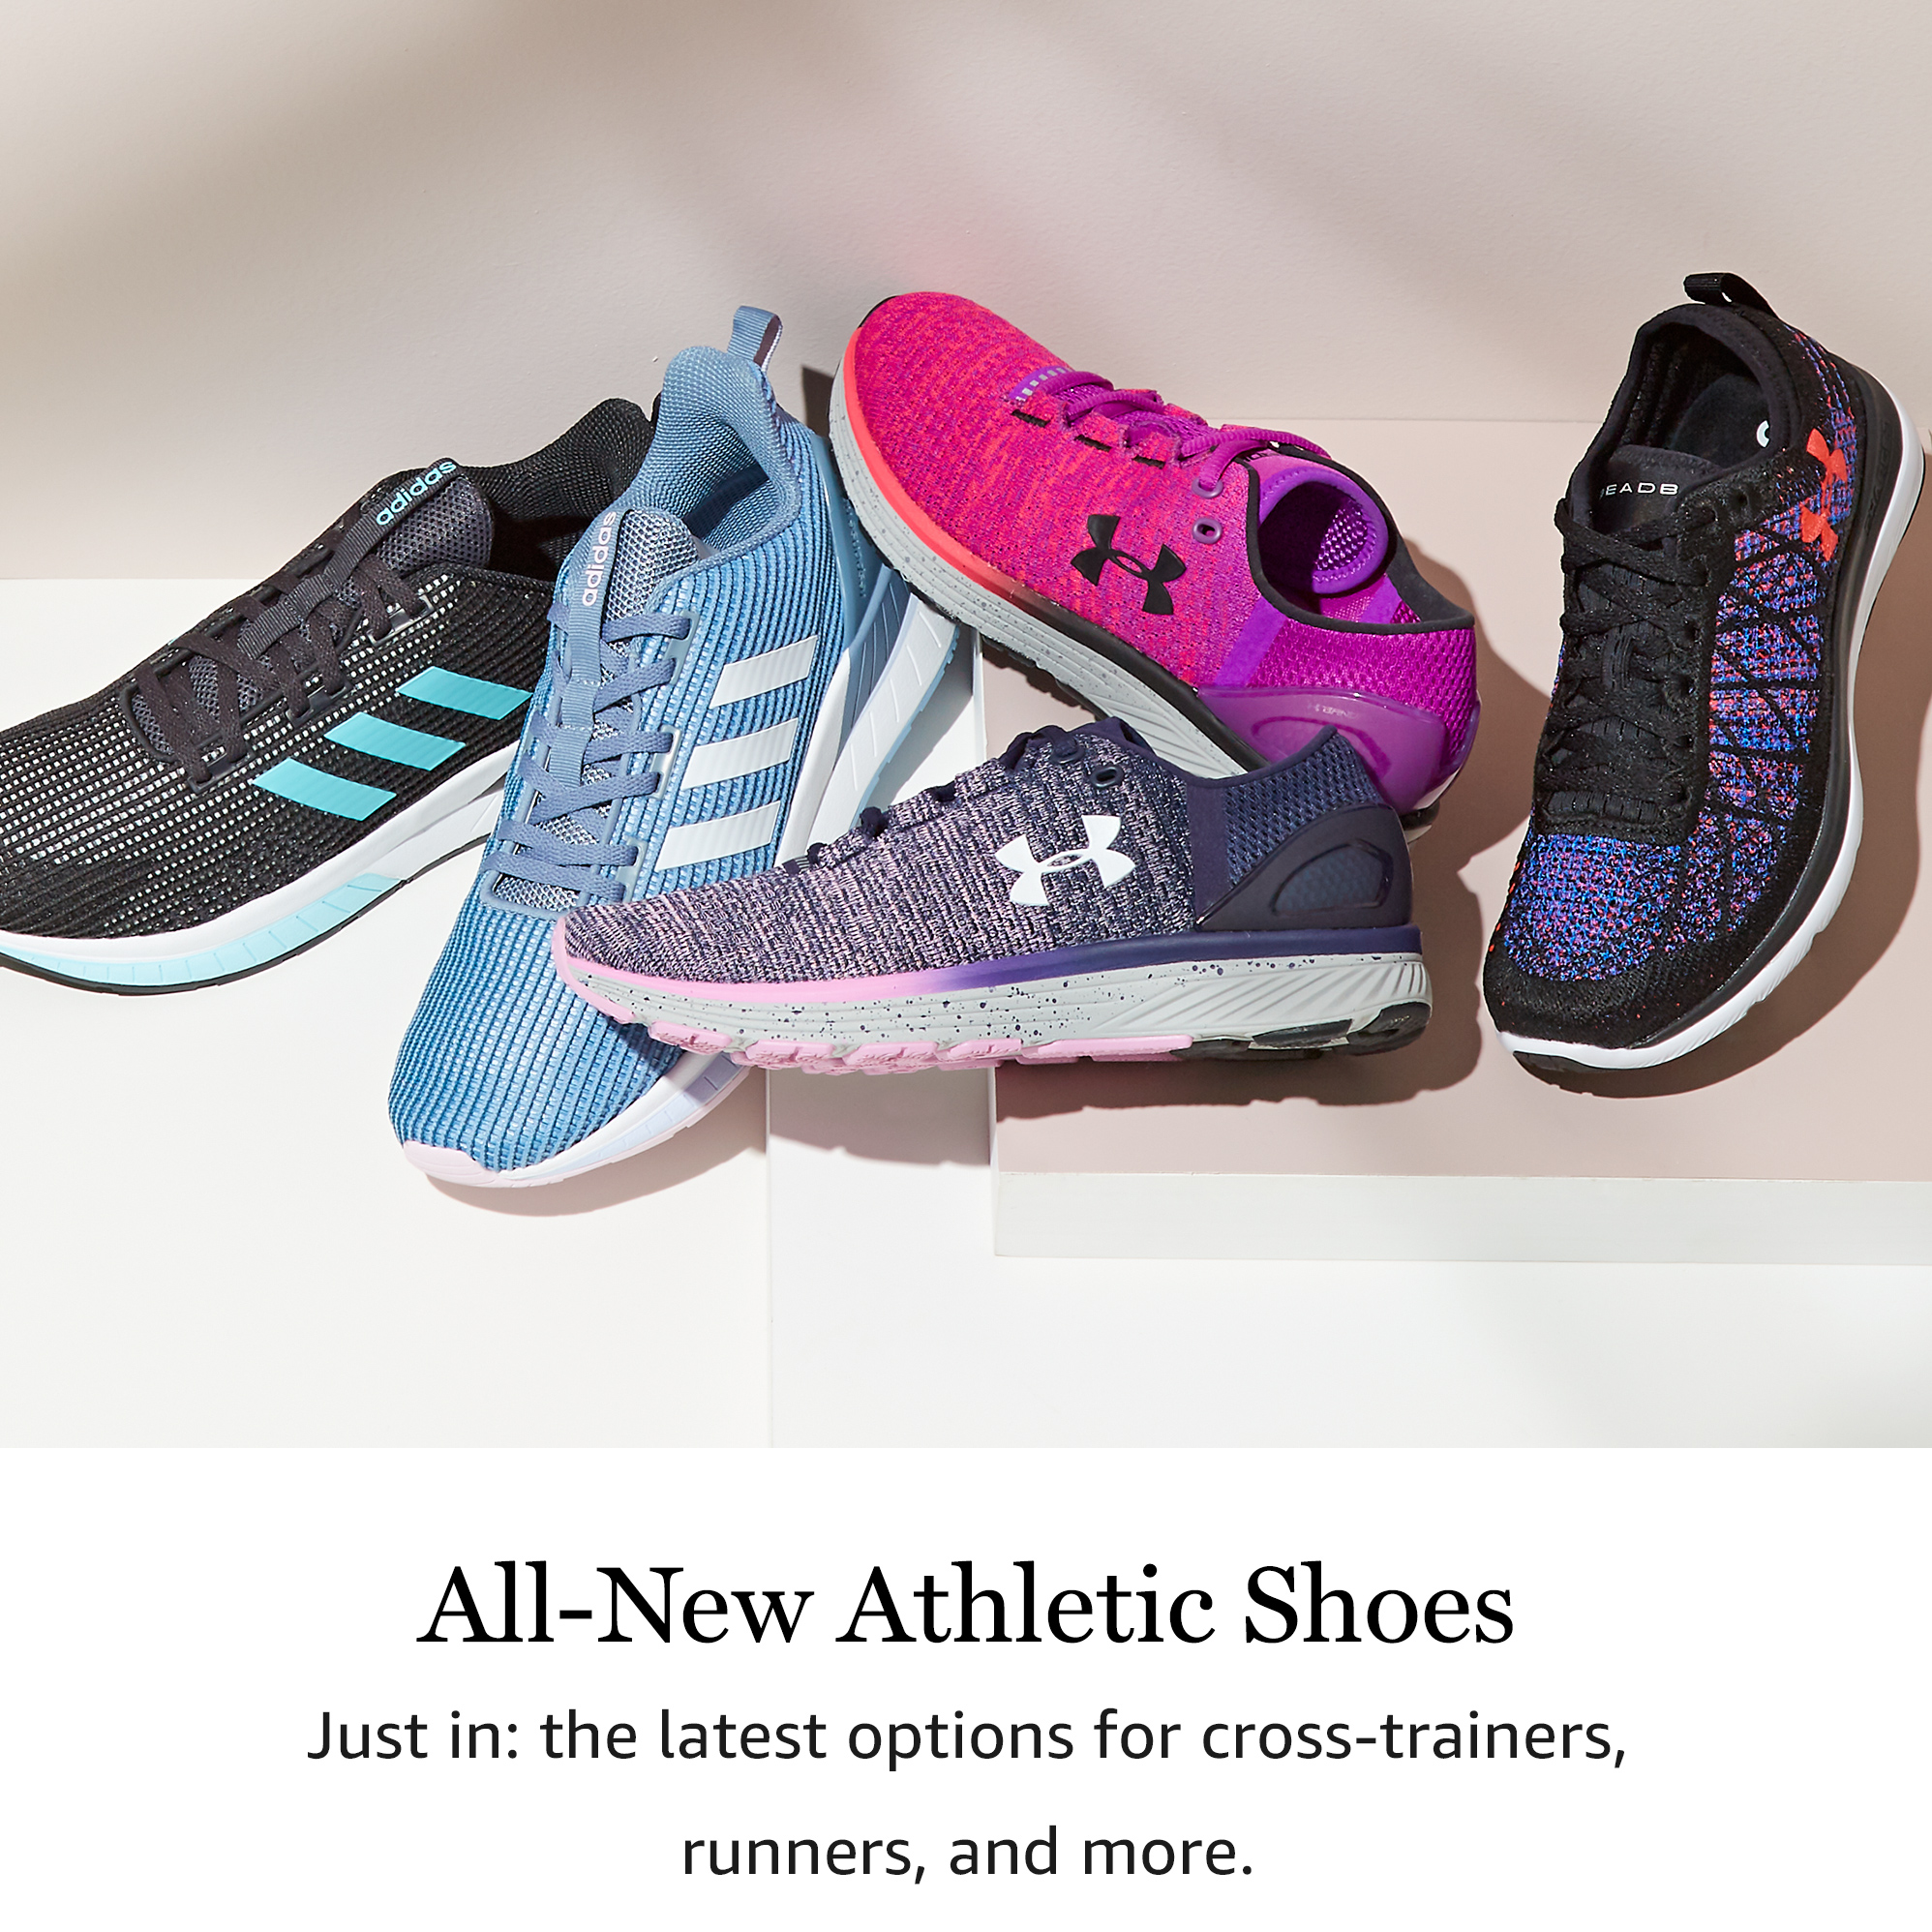 All-New Athletic Shoes